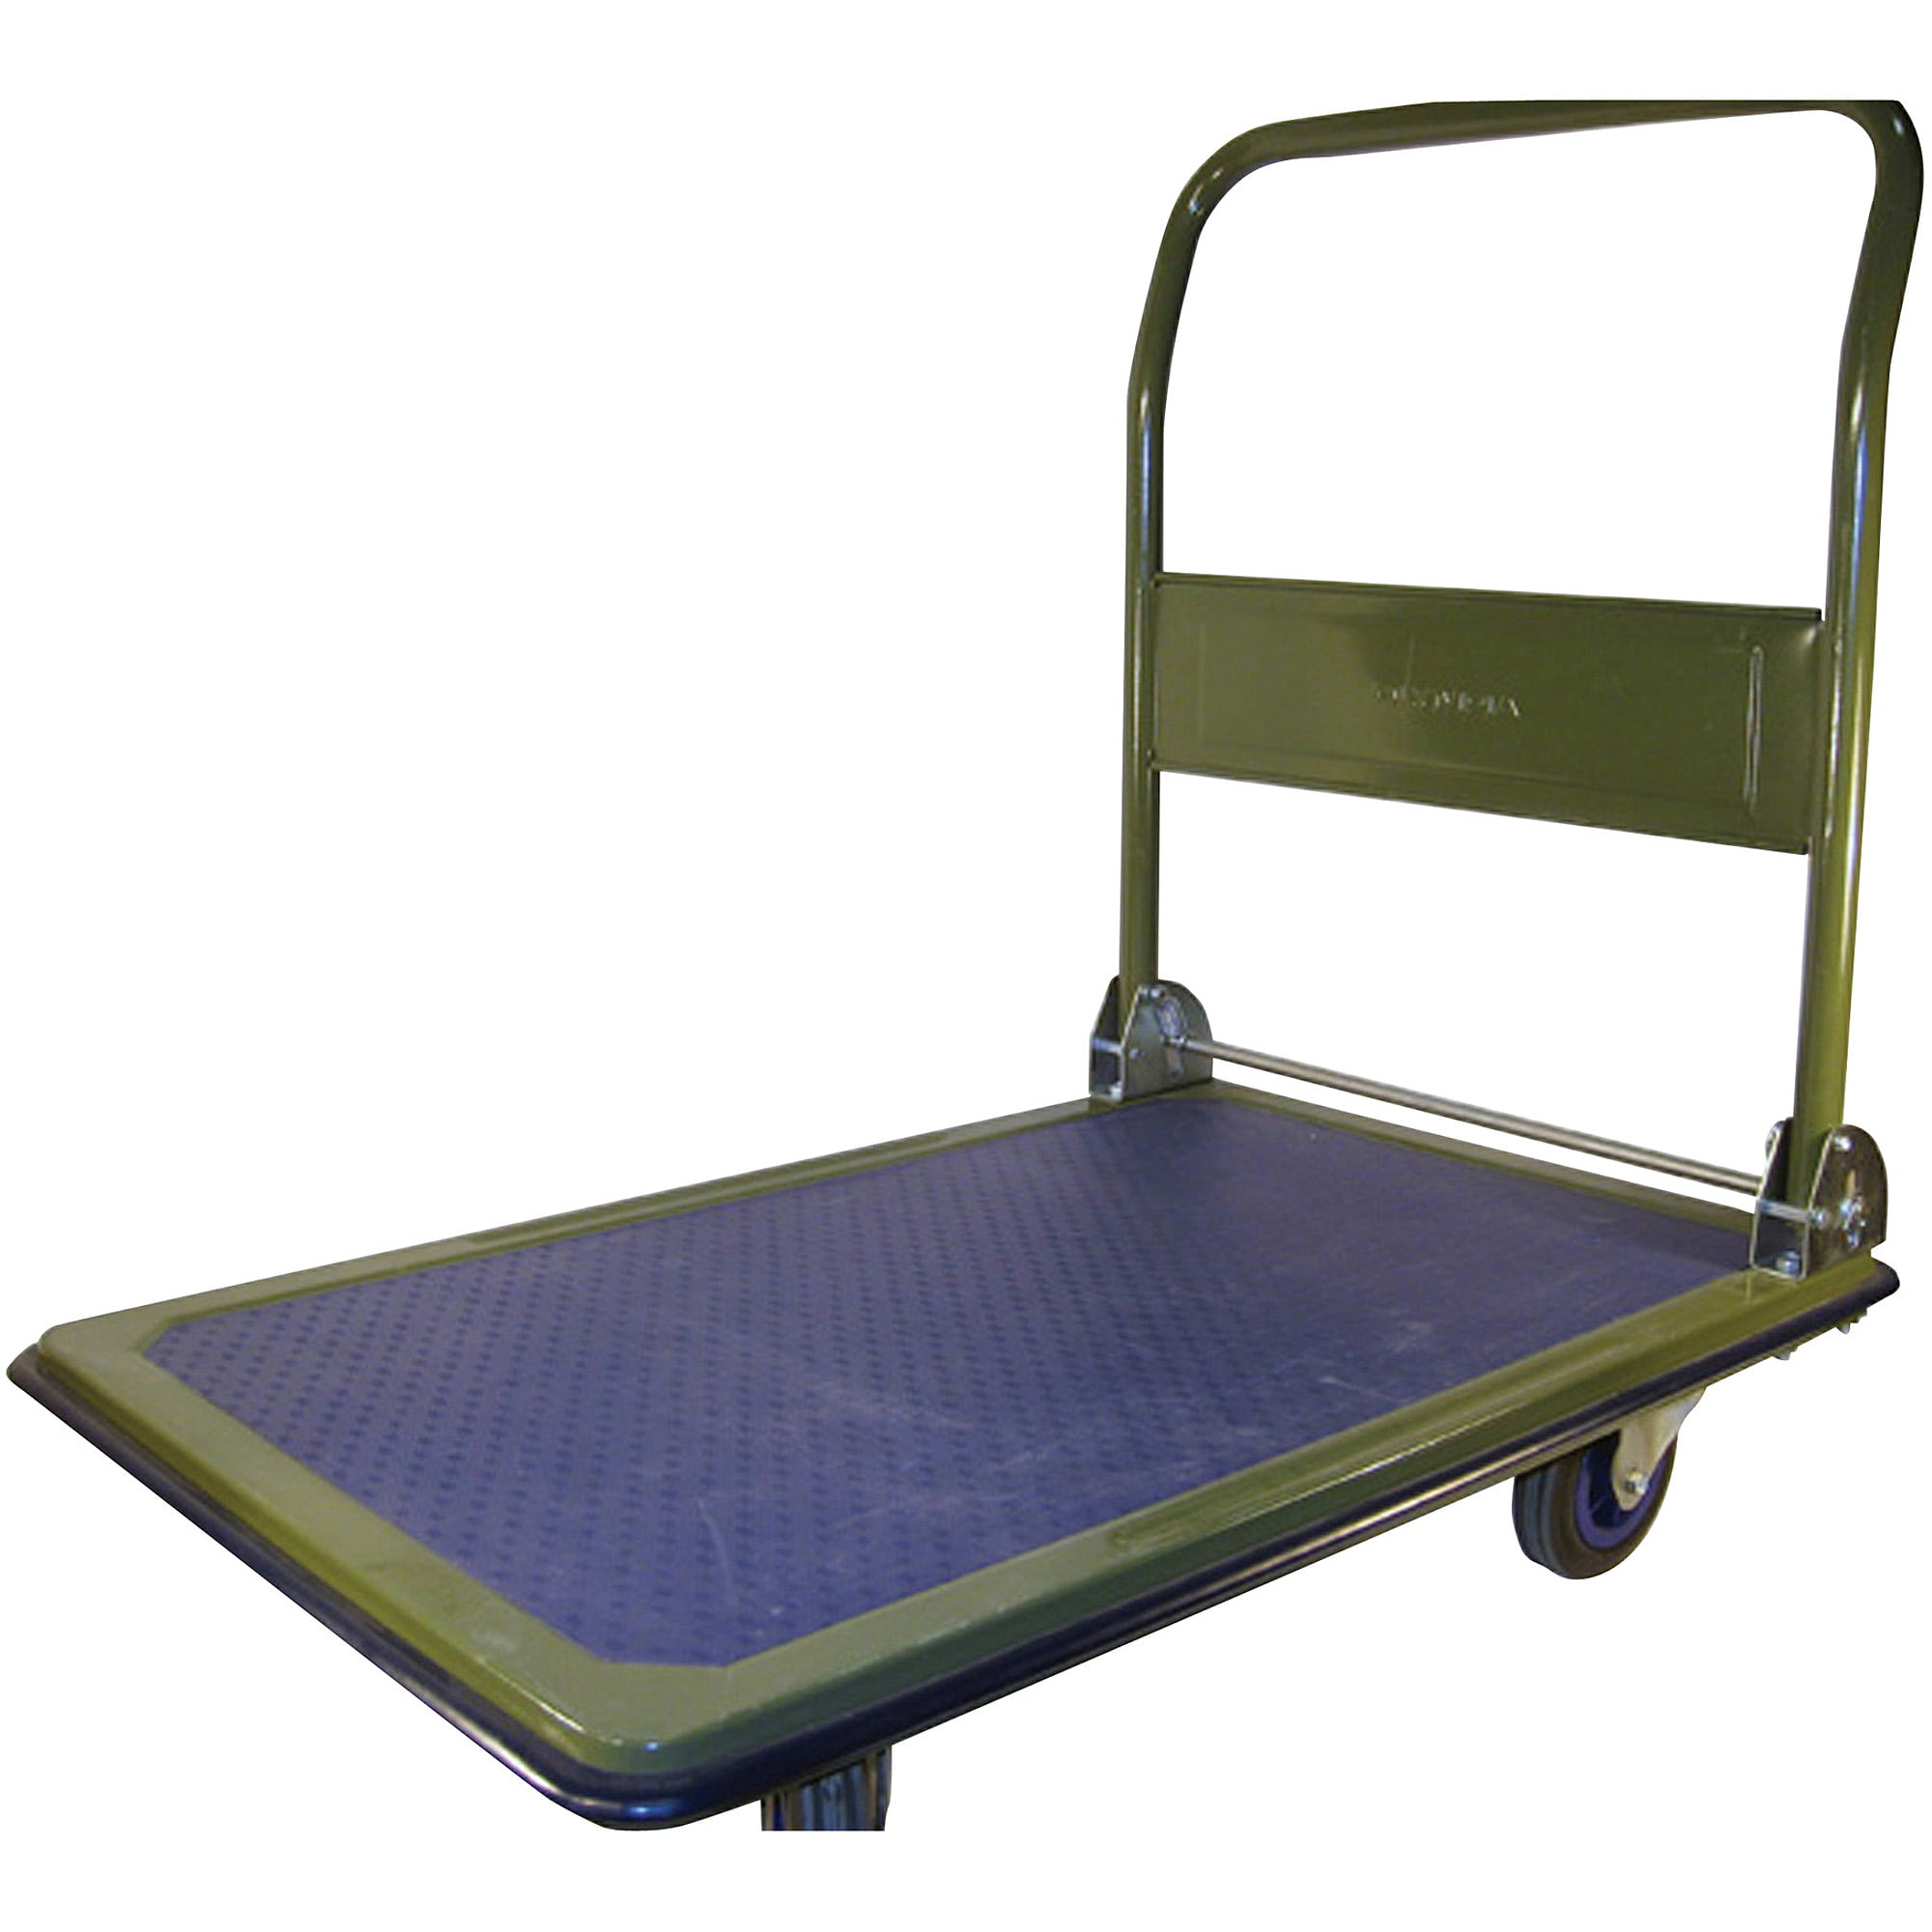 Olympia Tools 600-lb Capacity Heavy Duty Folding Platform Truck, 85-182 by Olympia Tools